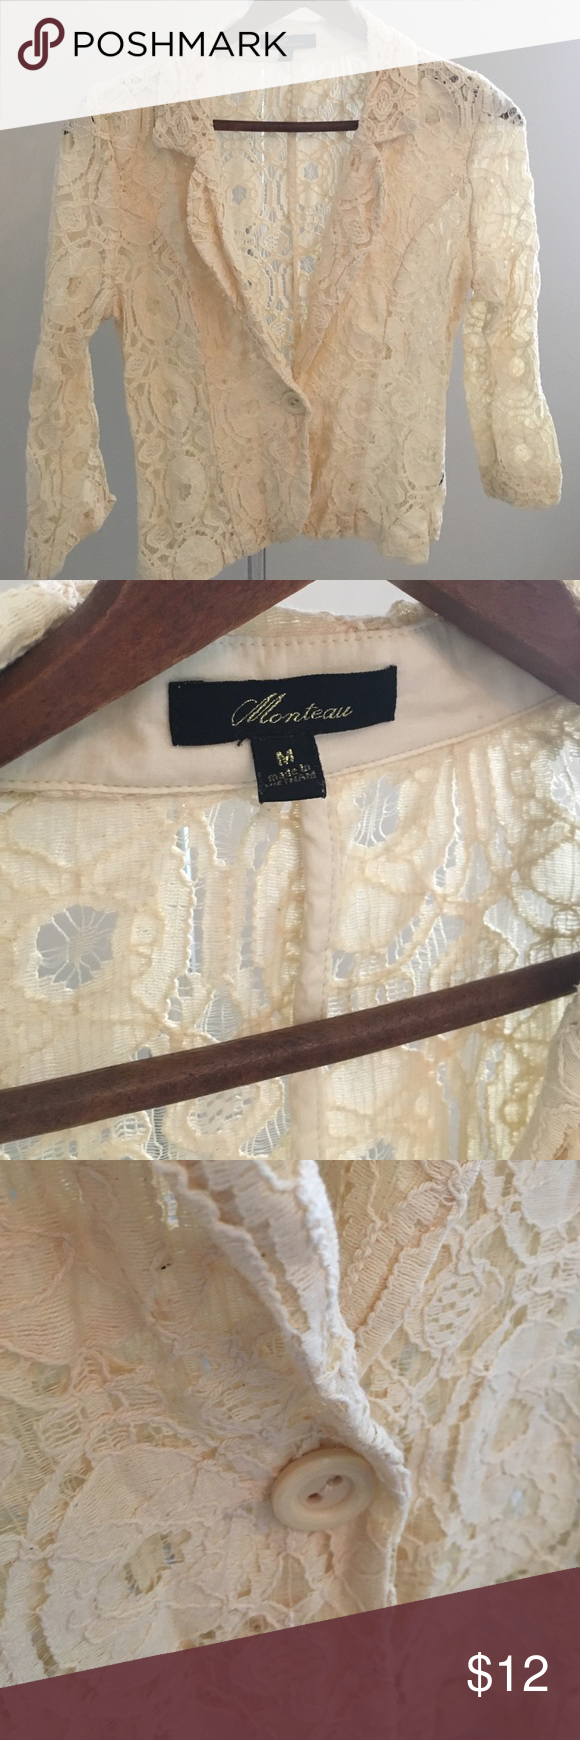 Creme Romantic Lace Blazer Such a timeless and beautiful piece! It's a Creme, waist long Romantic Lace Blazer. Fitted look. Perfect condition. Never used. Fits like a small. Monteau Jackets & Coats Blazers